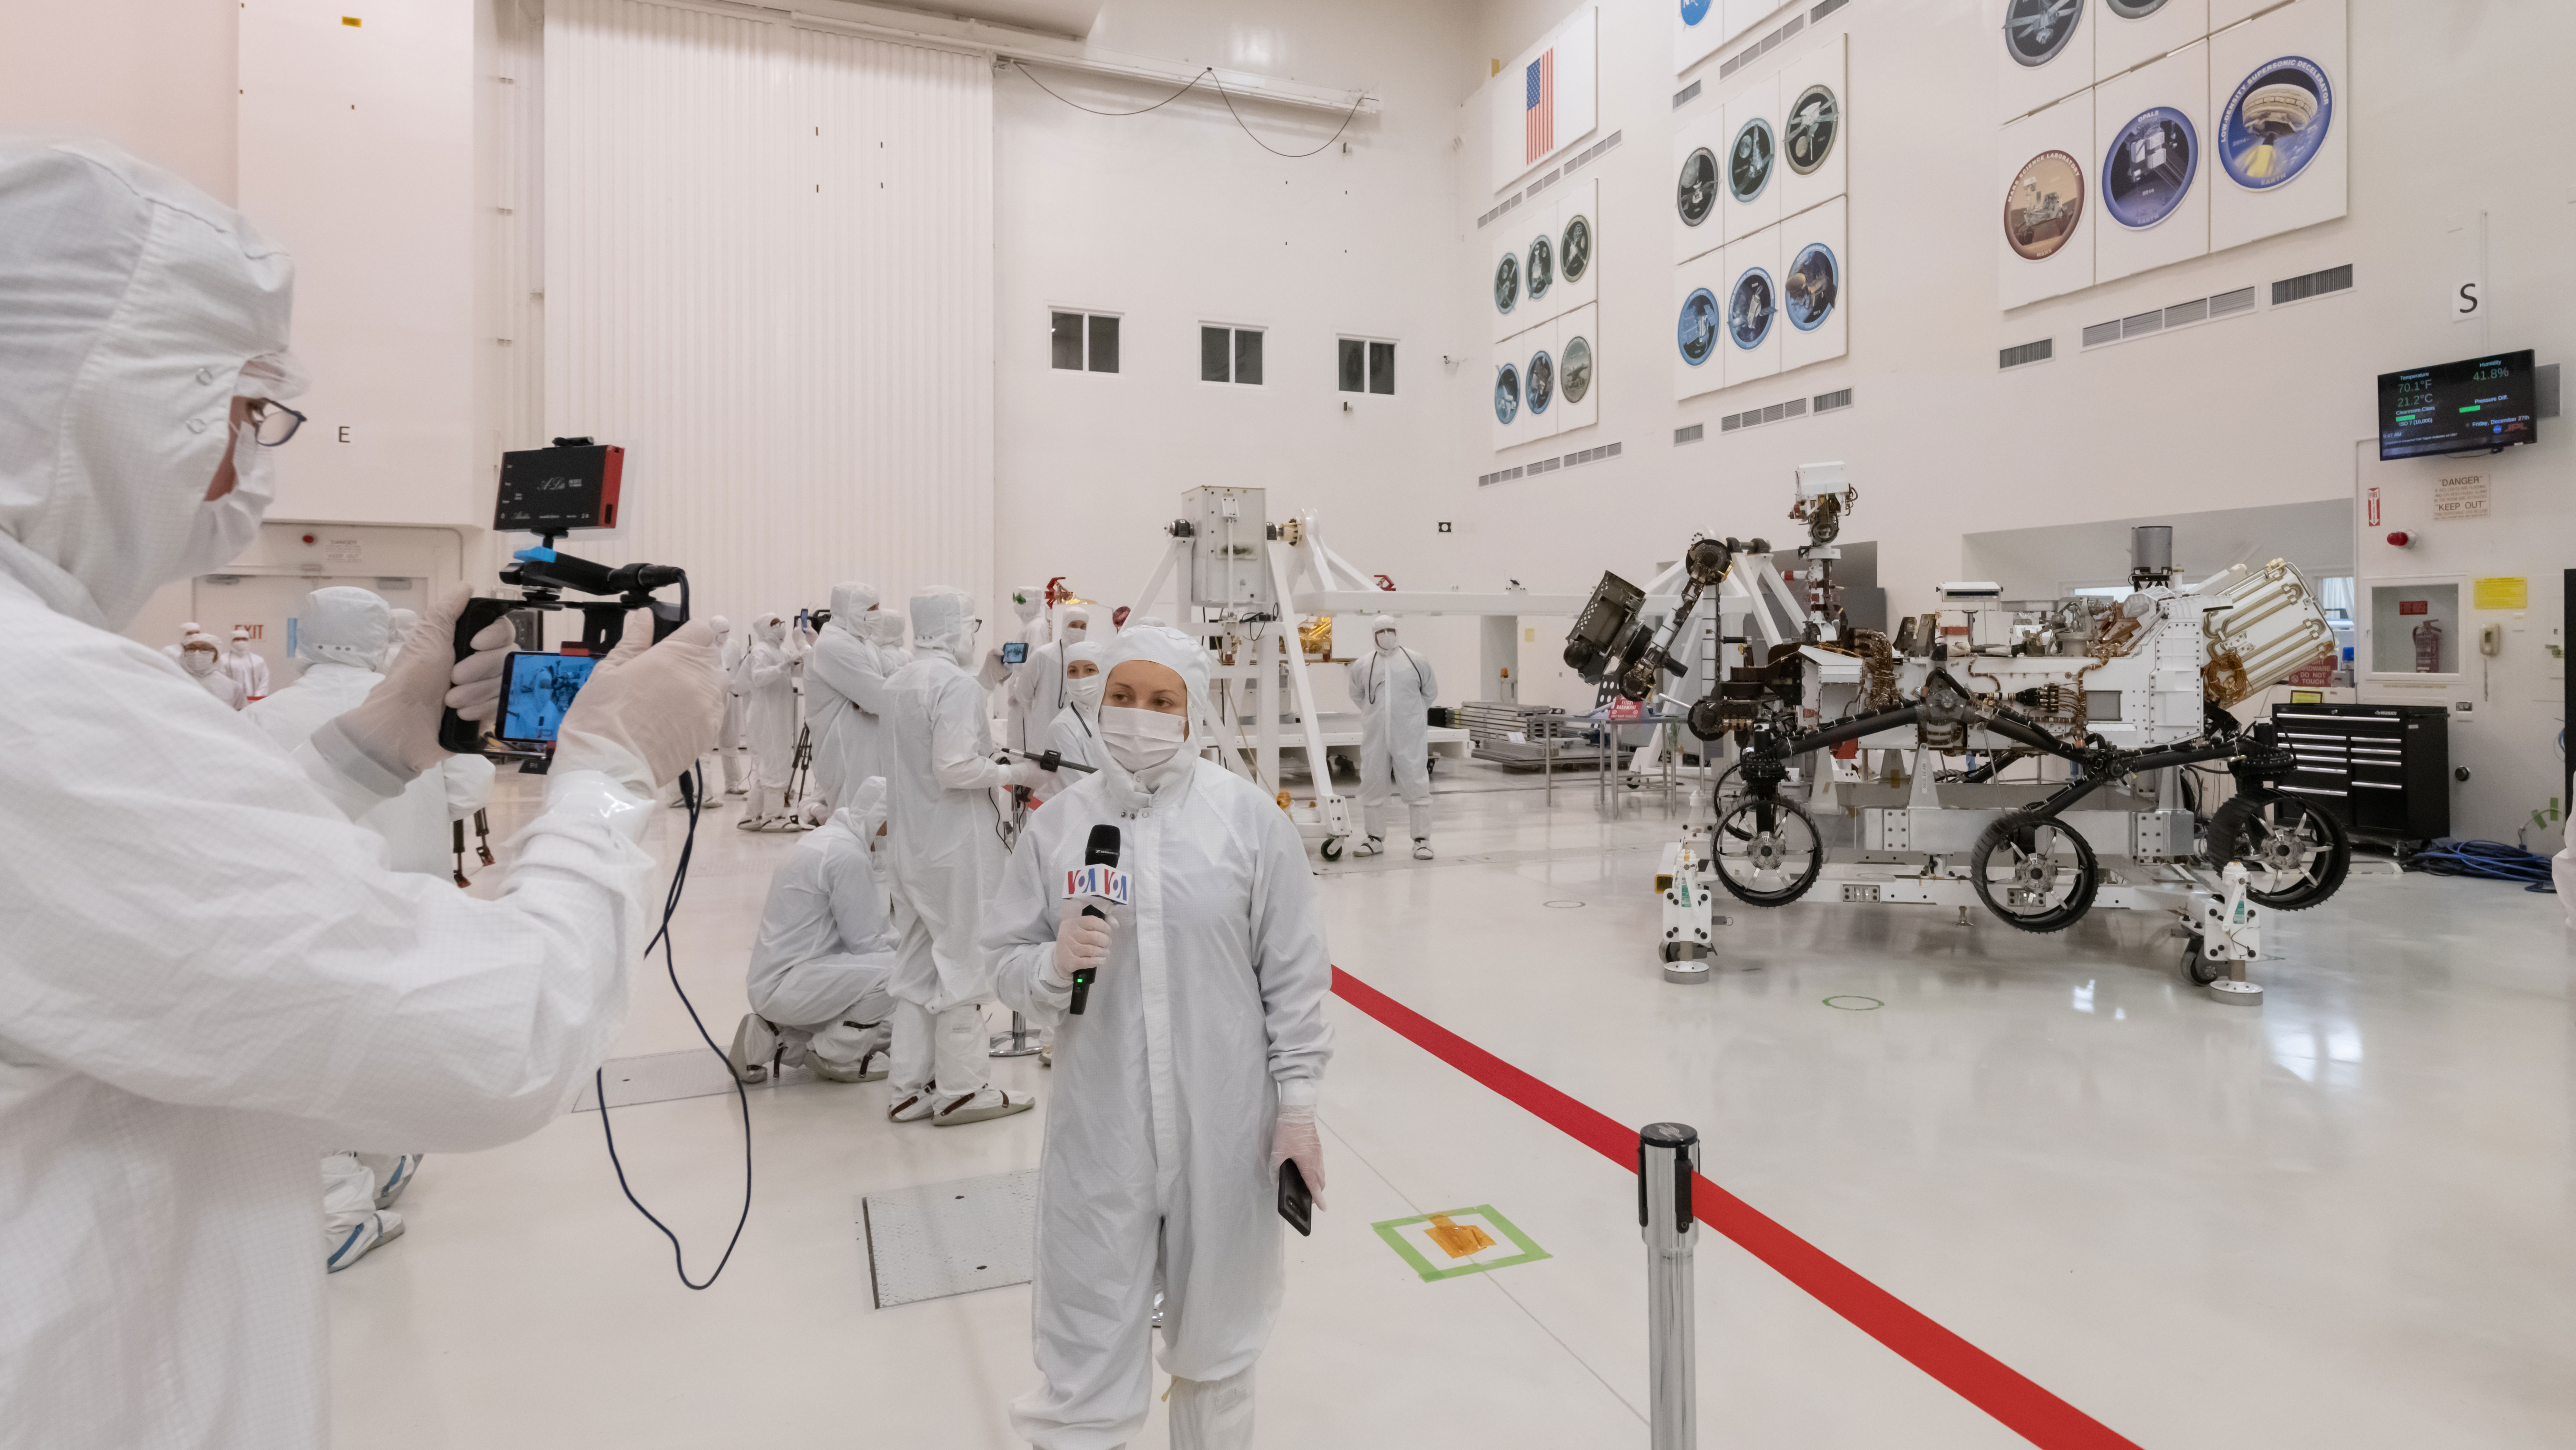 slide 3 - Media get a close-up of NASA's next Mars explorer at NASA's Jet Propulsion Laboratory's clean room.